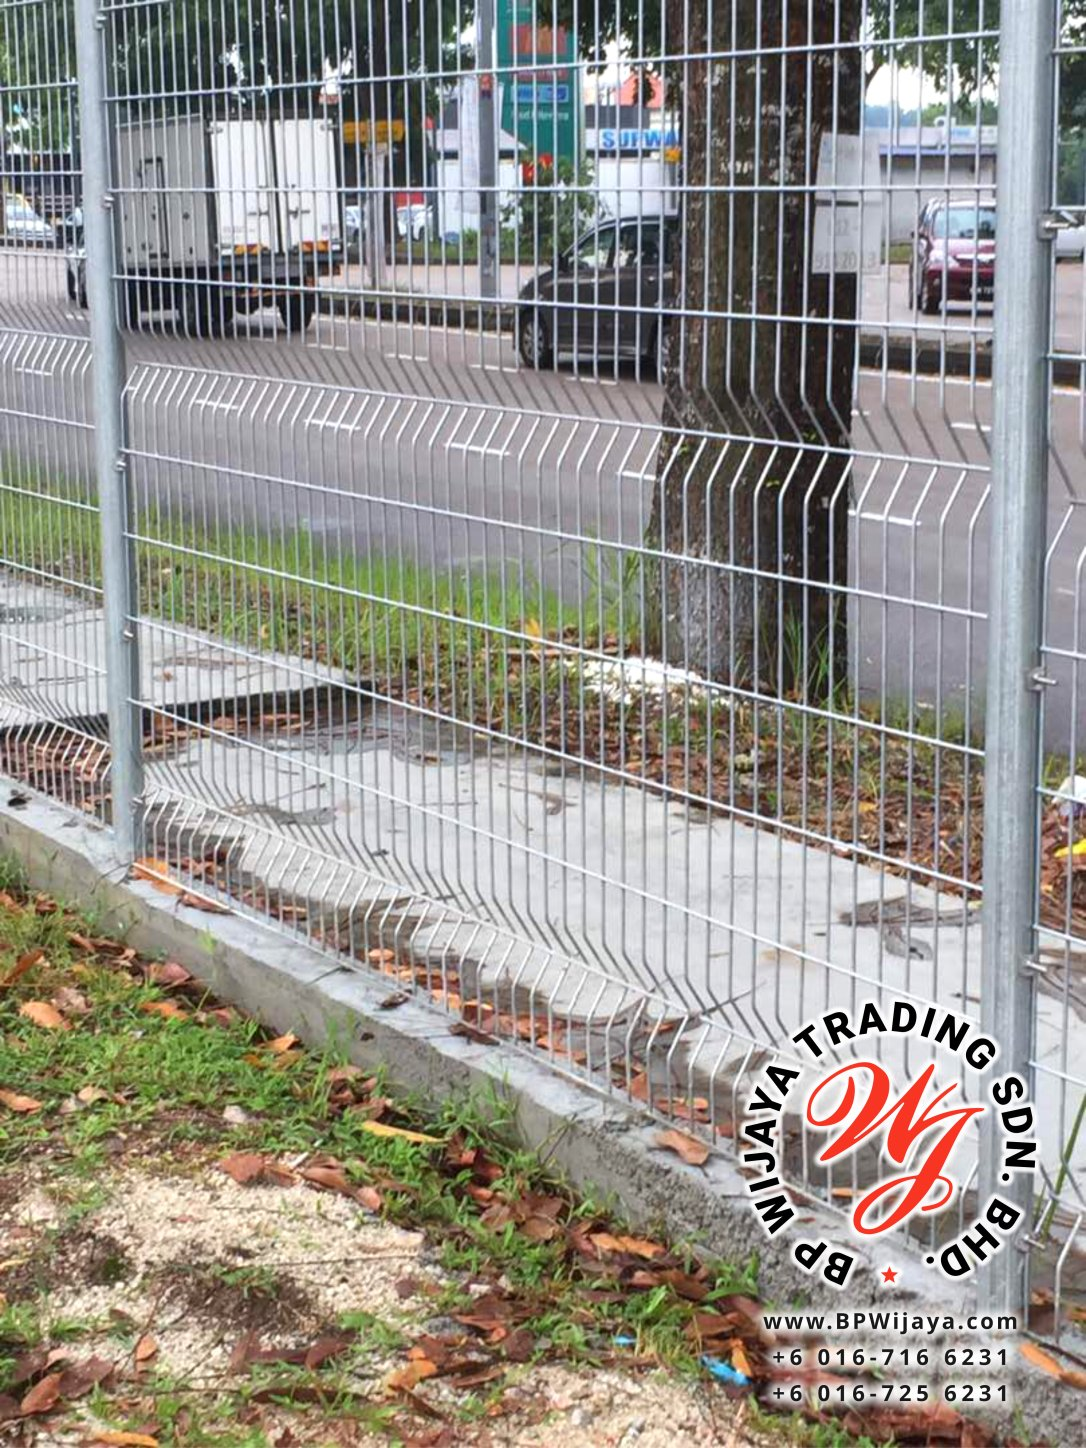 BP Wijaya Trading Sdn Bhd Malaysia Johor Batu Pahat manufacturer of safety fences building materials Hotdip Galvanized Fence Shape V Mesh Wire Fence FAV V Shape Fence BRC B02